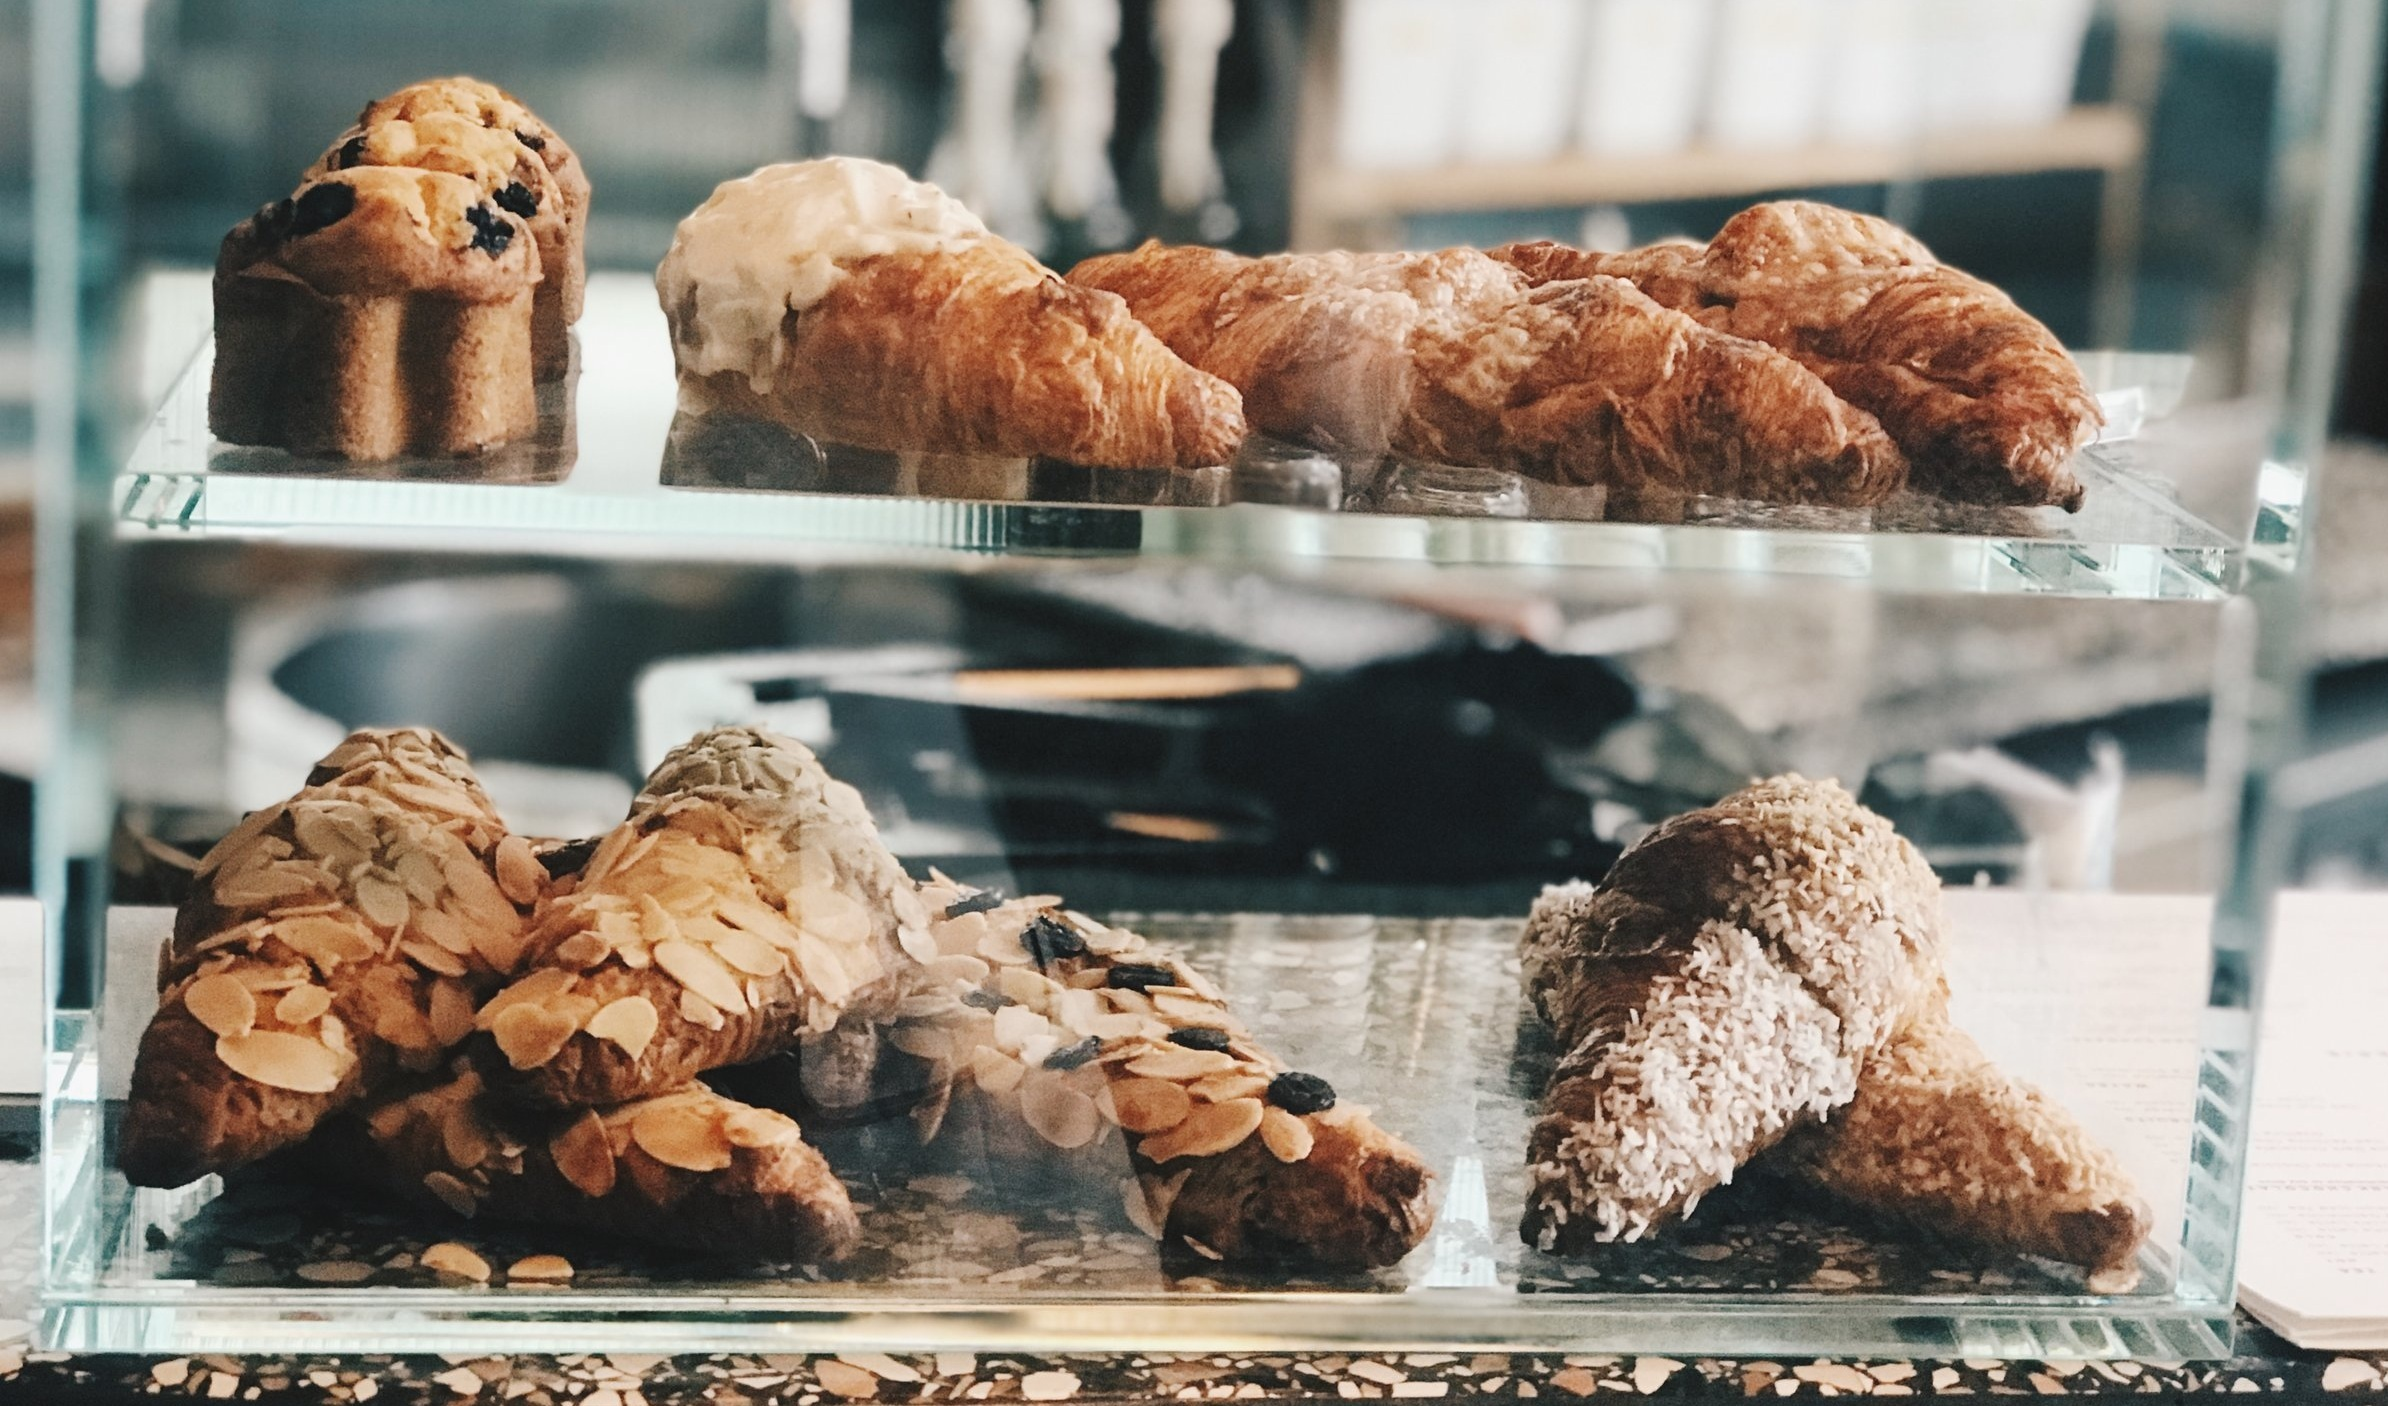 Muffins, scones + croissants are all great options. Plus, chances are that they're fresher, easier to chew (higher moisture content) and have better ingredients than any energy bar that has been sitting on a shelf for weeks.